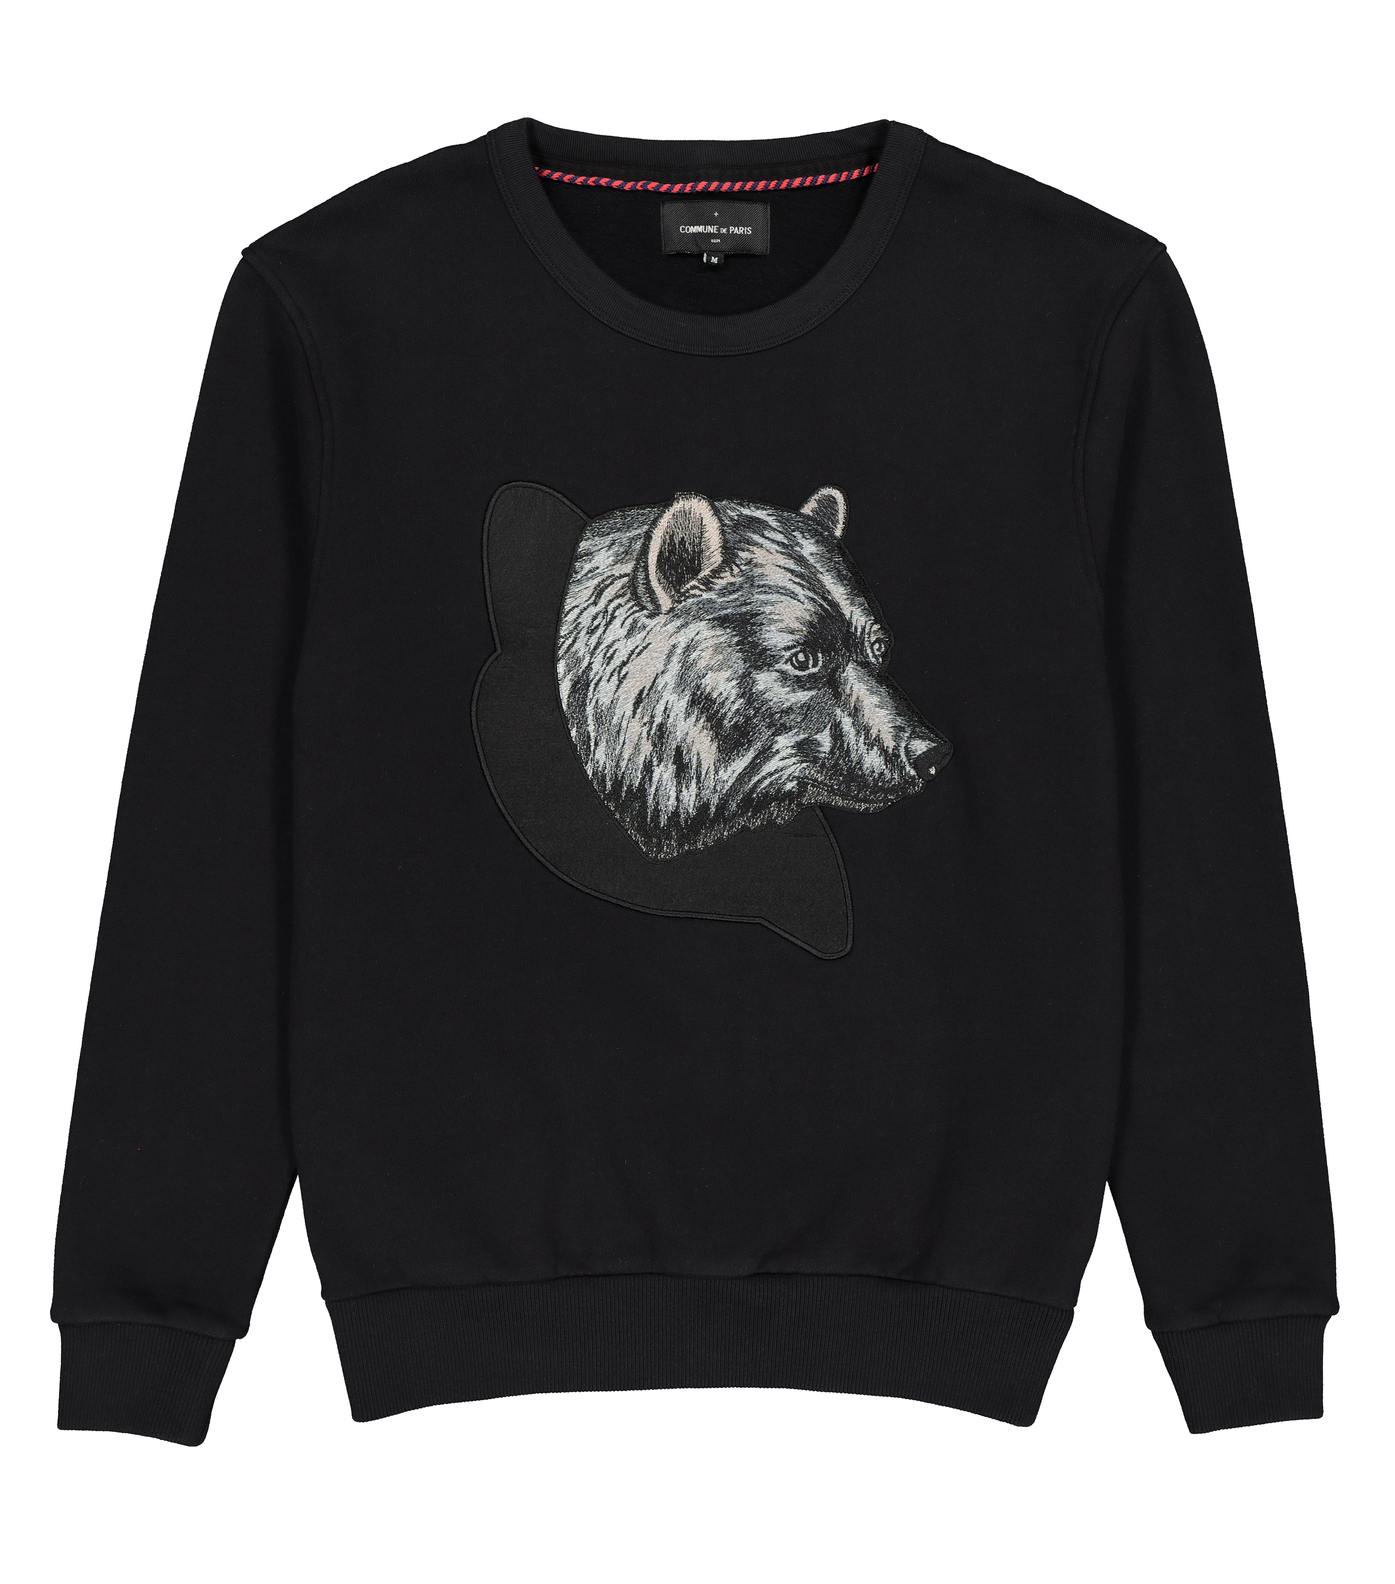 SWEAT L'OURS - Black